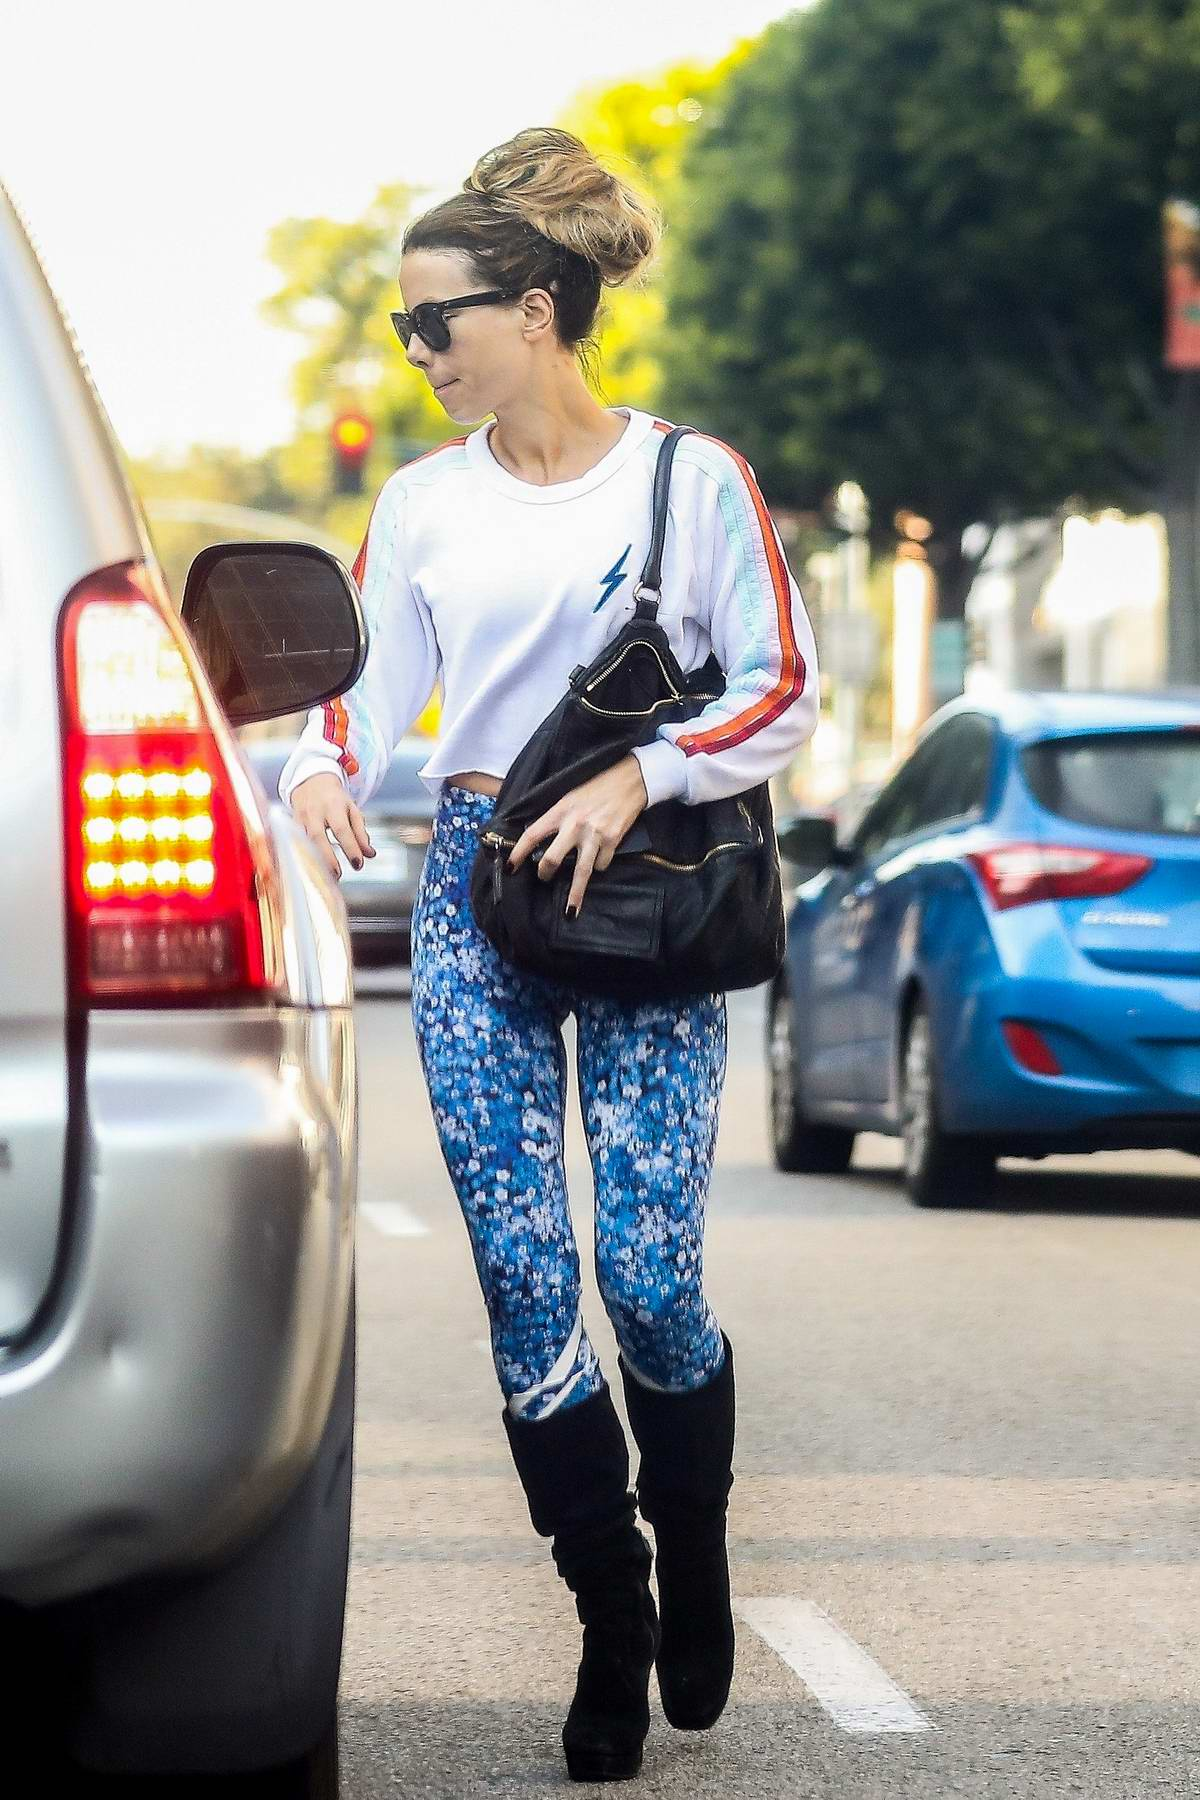 Kate Beckinsale rocks blue leggings with a white crop top while visiting a nail salon in Beverly Hills, California